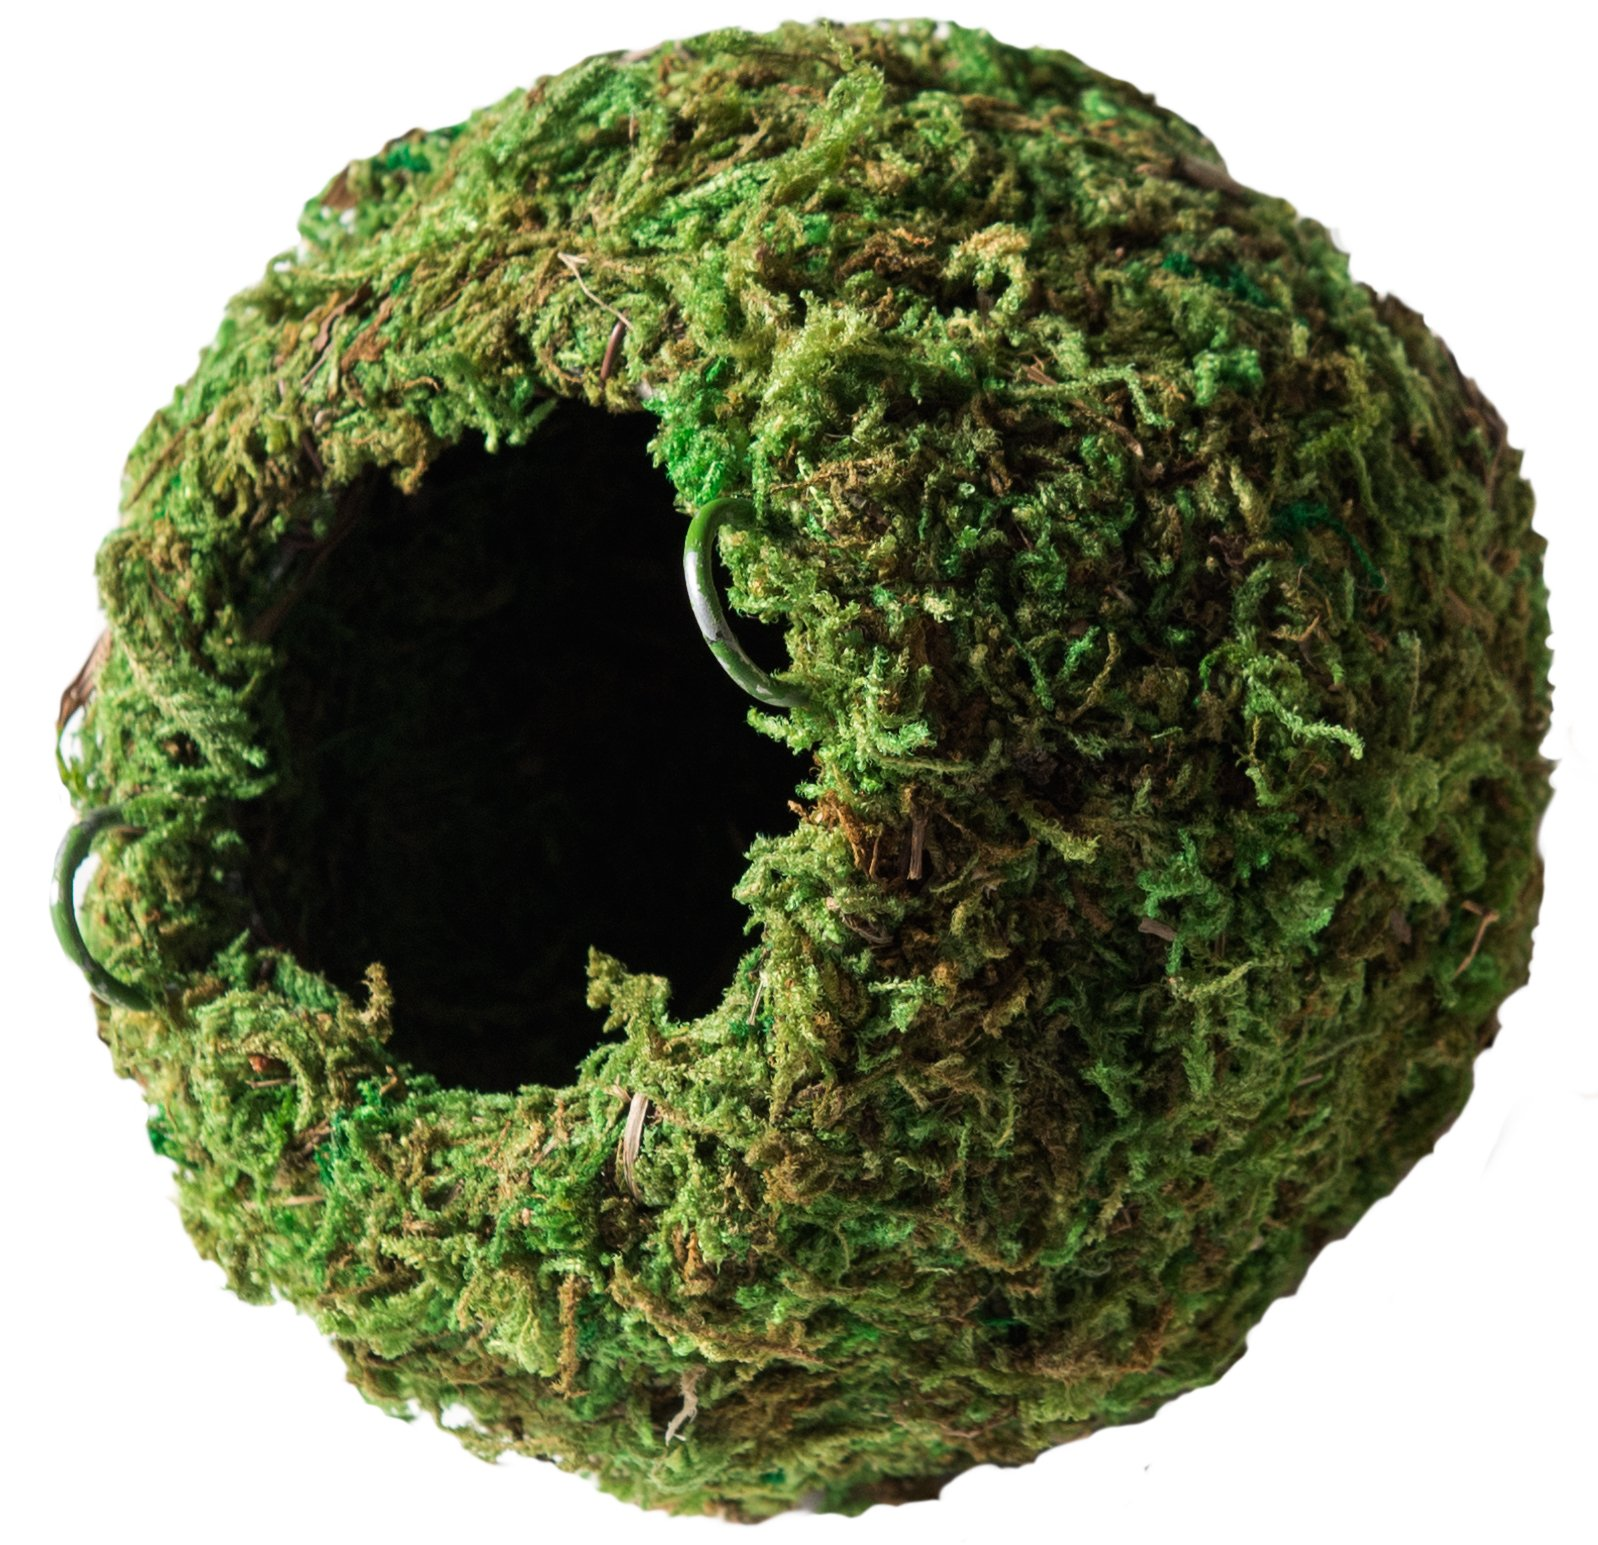 Galapagos 05346 Mossy Cave Hide, 4'', Green